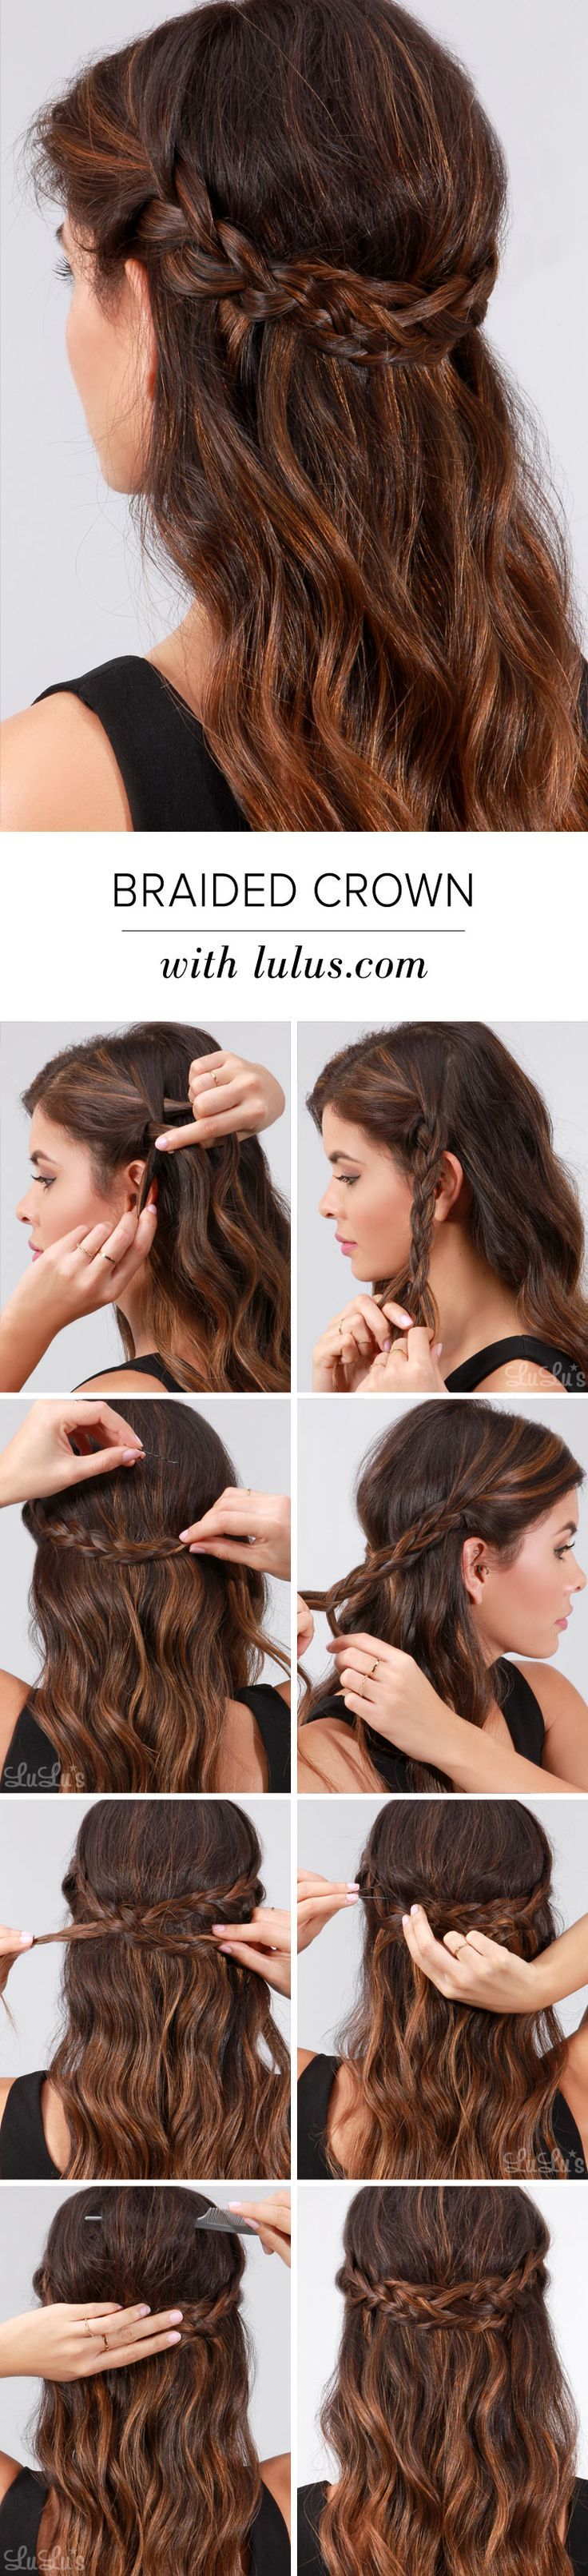 Super easy diy braided hairstyles for wedding tutorials crown